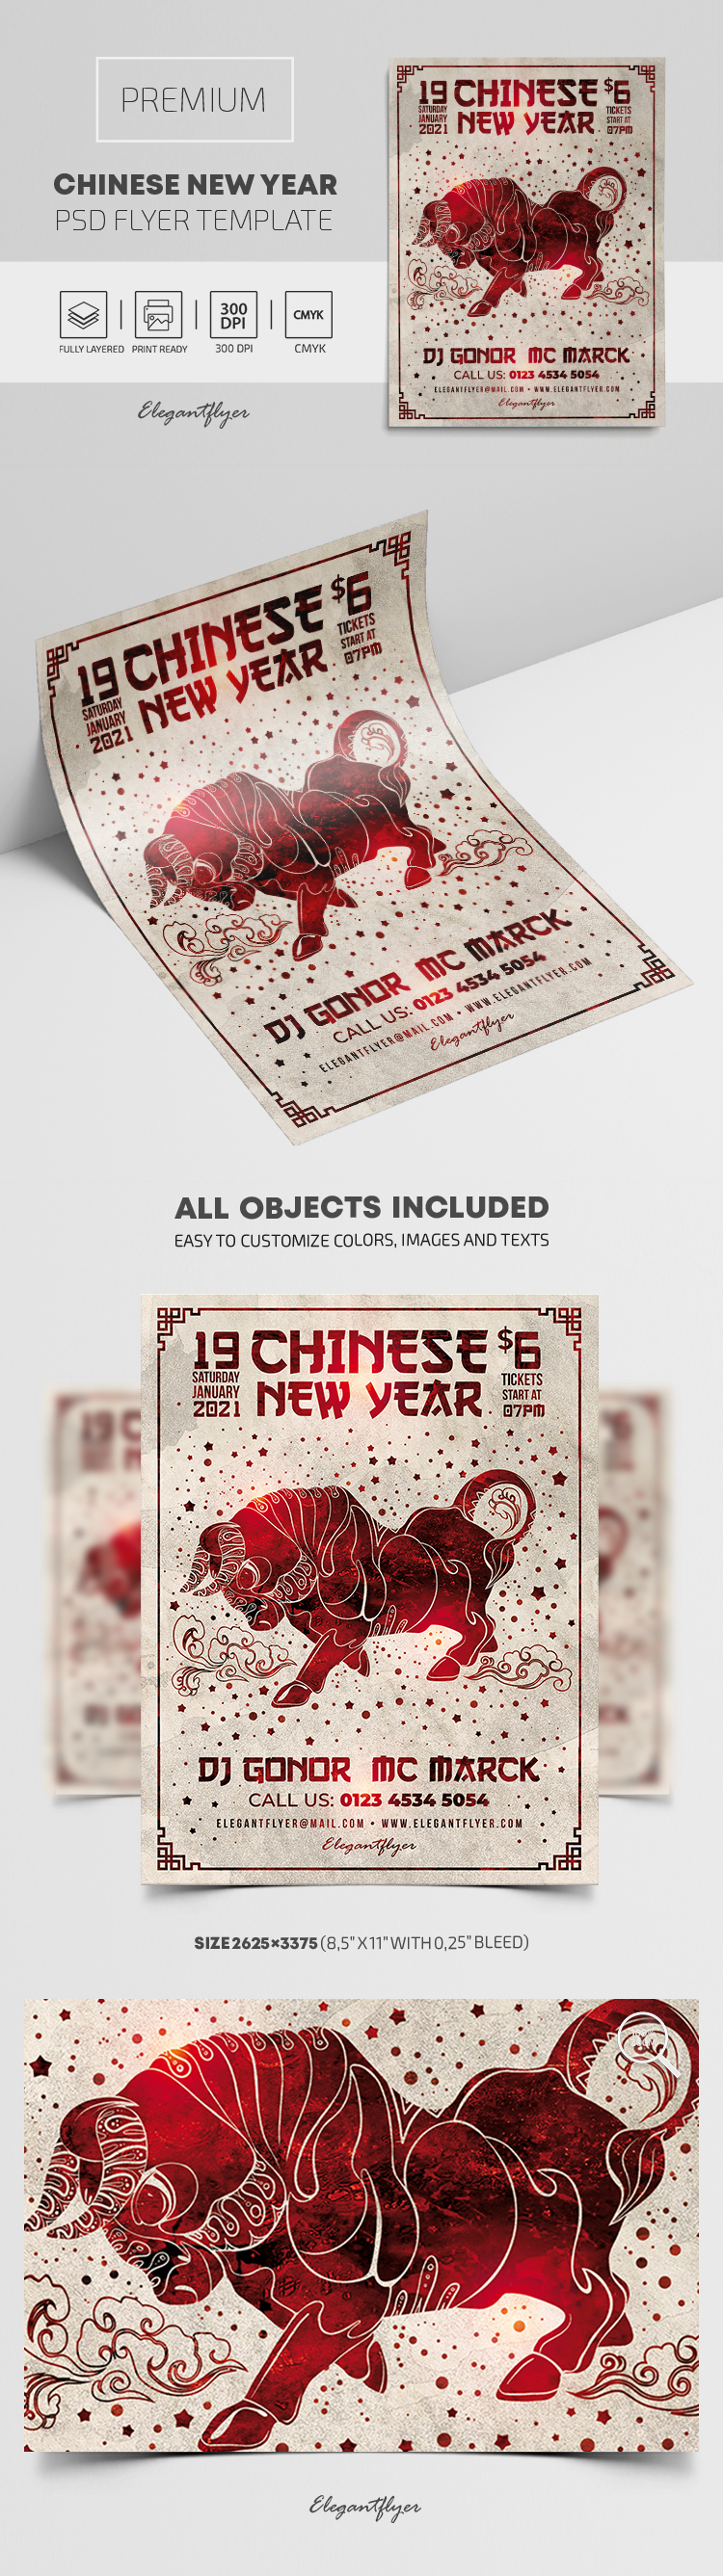 Chinese New Year – Premium PSD Flyer Template